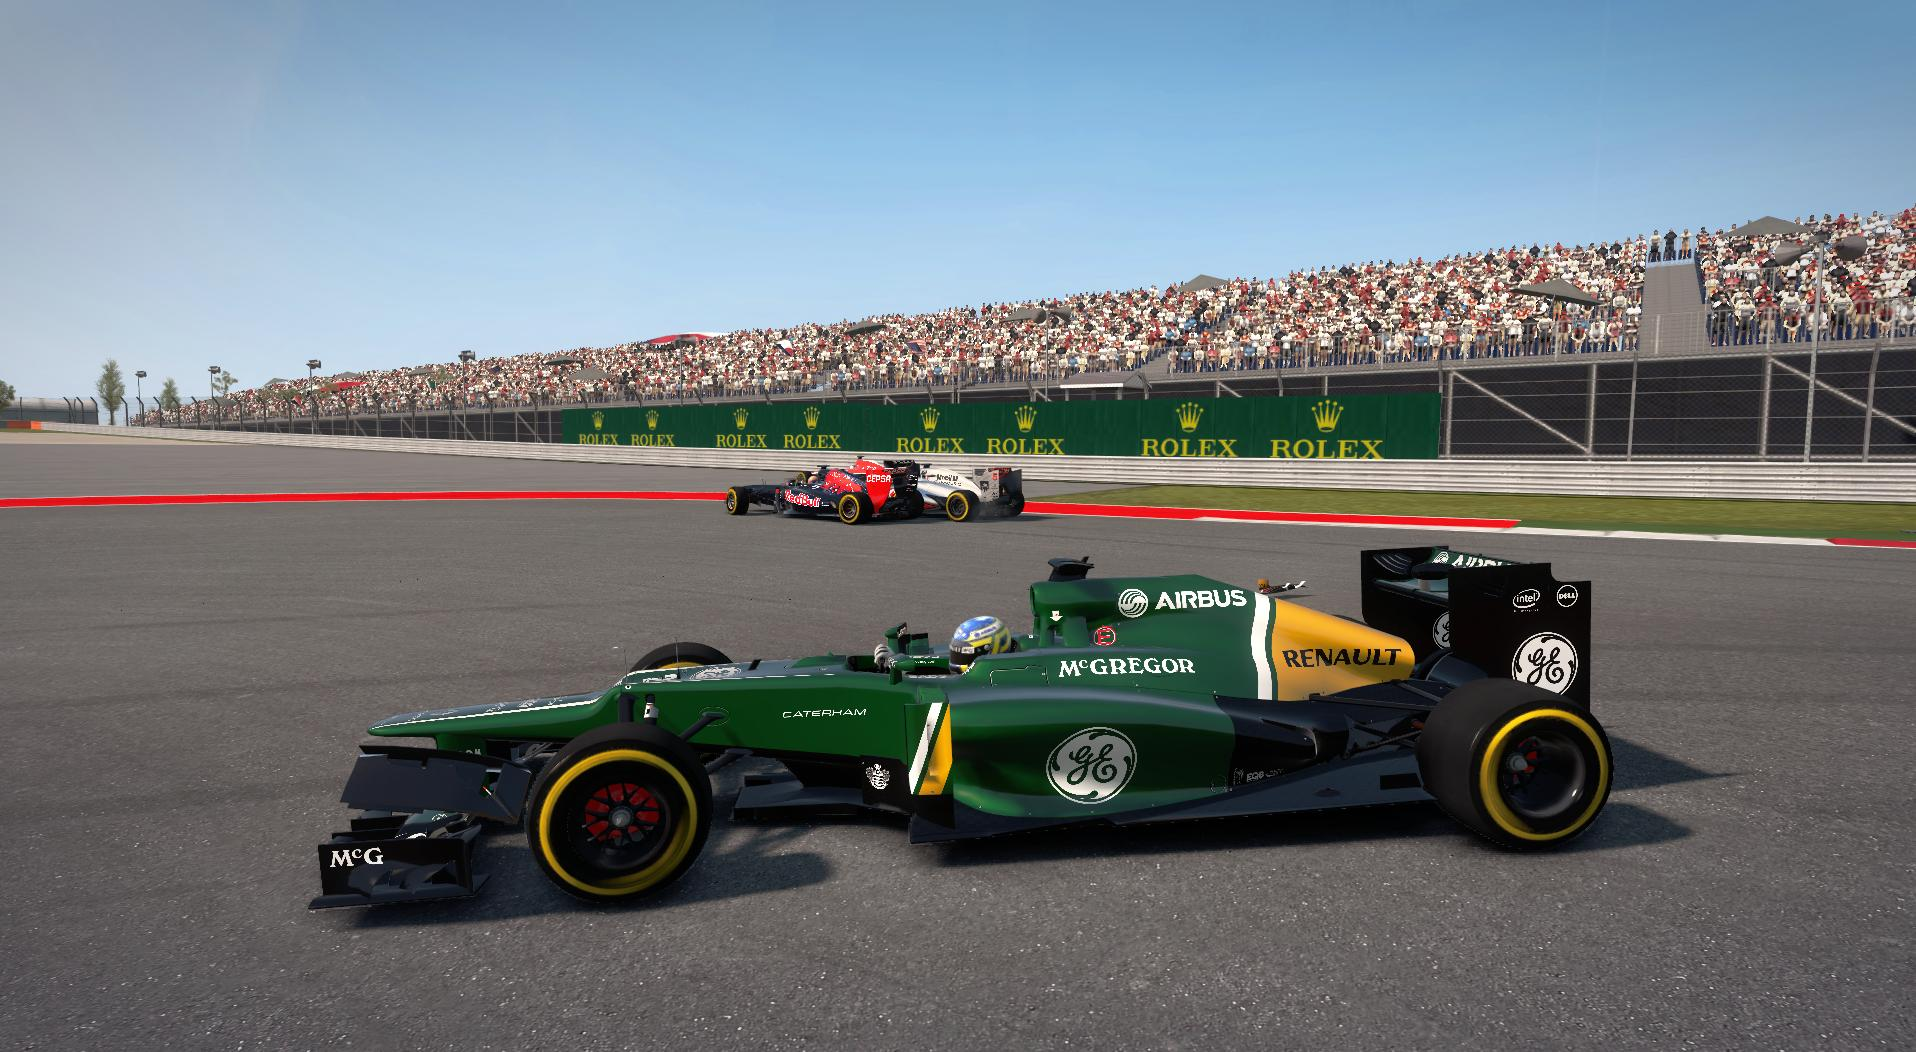 F1 2013 - Debris on my car!